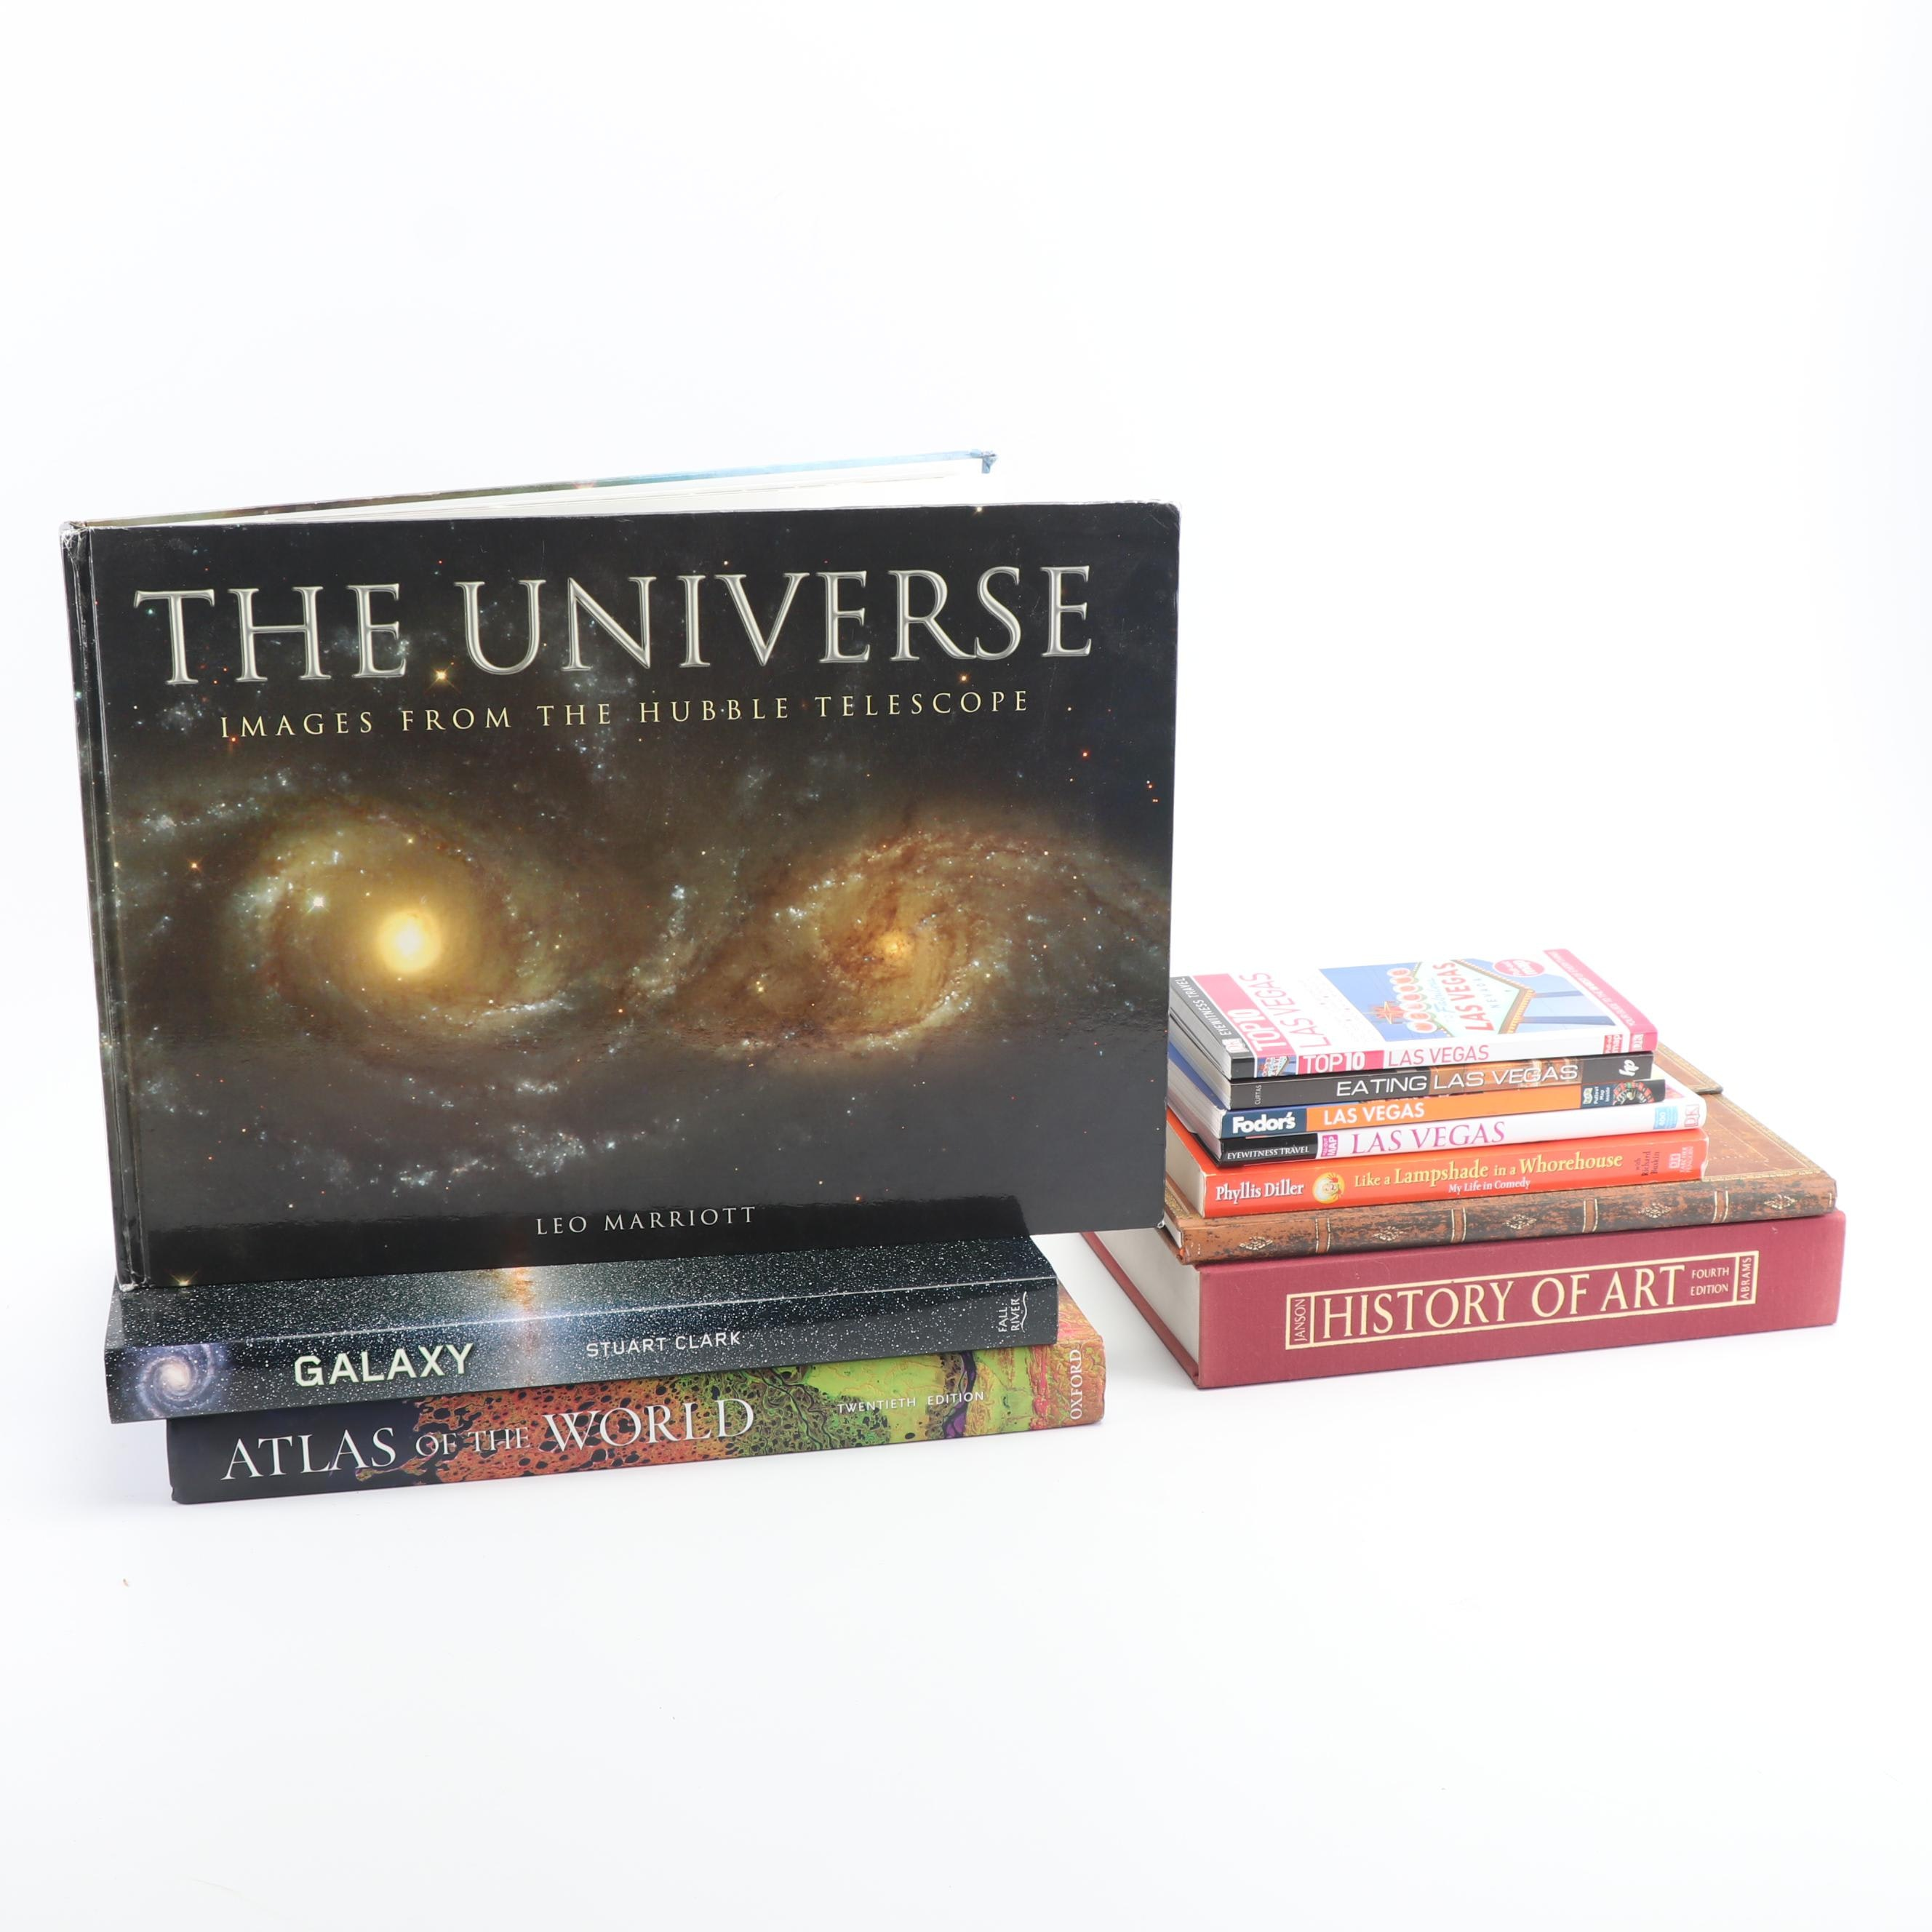 Nonfiction Books on the Universe, Art History and Las Vegas Travel